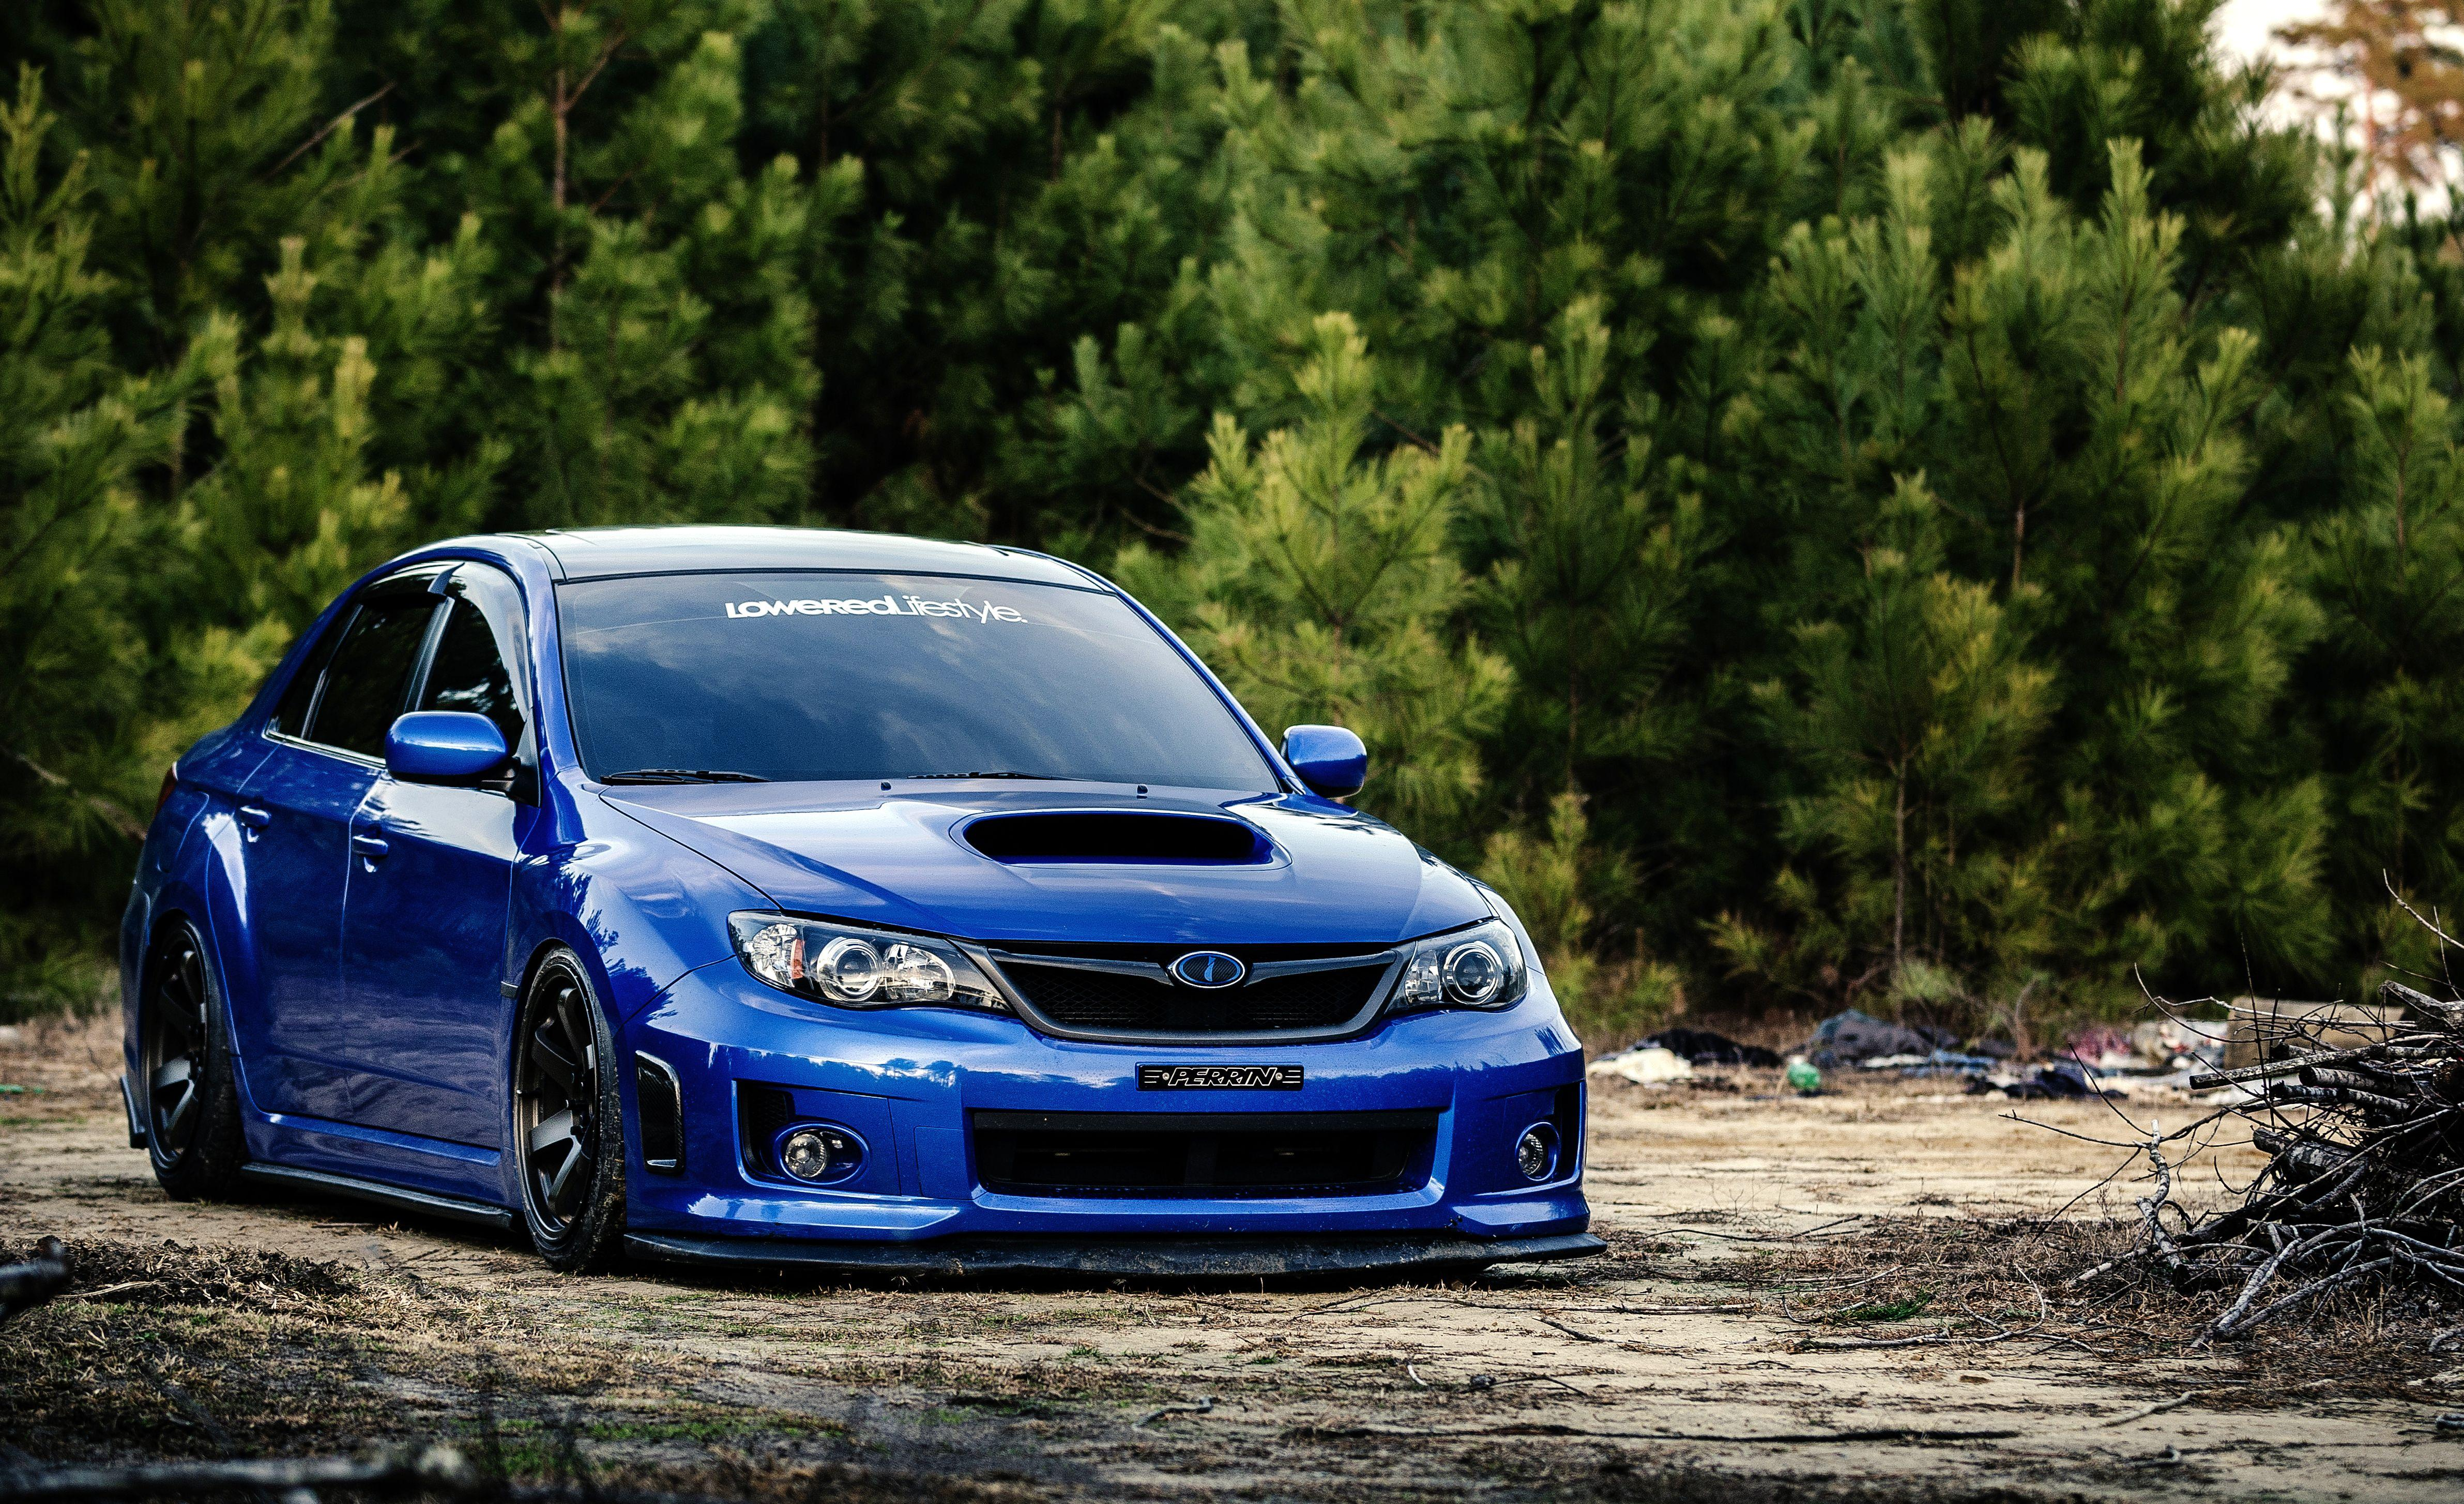 Subaru Impreza 4k Ultra HD Wallpaper | Background Image | 4766x2910 ...